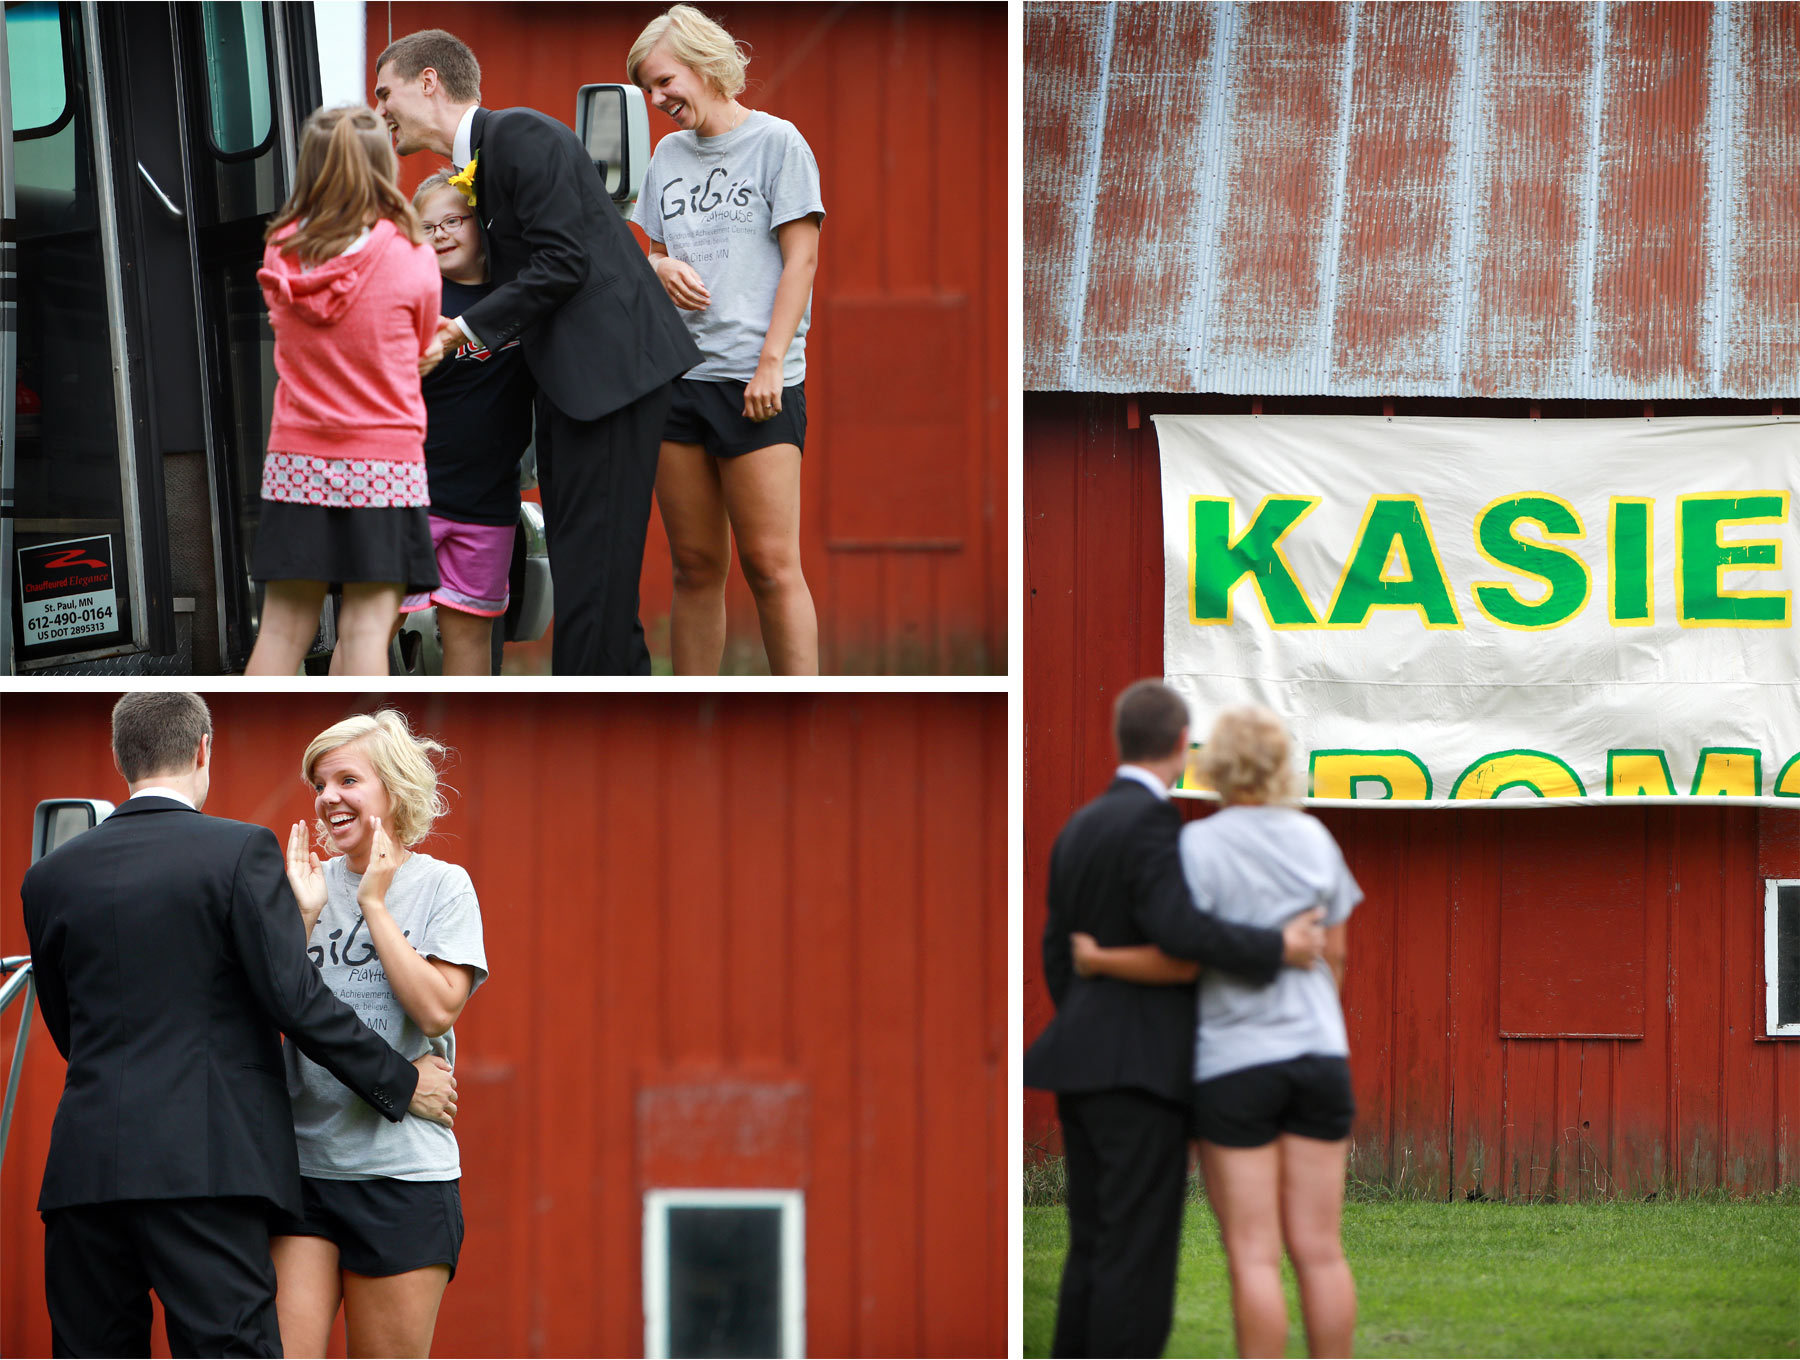 05-Vick-Photography-Proposal-Session-Engagement-Family-Farm-Prom-Sign-Suprise-Kasie-and-Josh.jpg